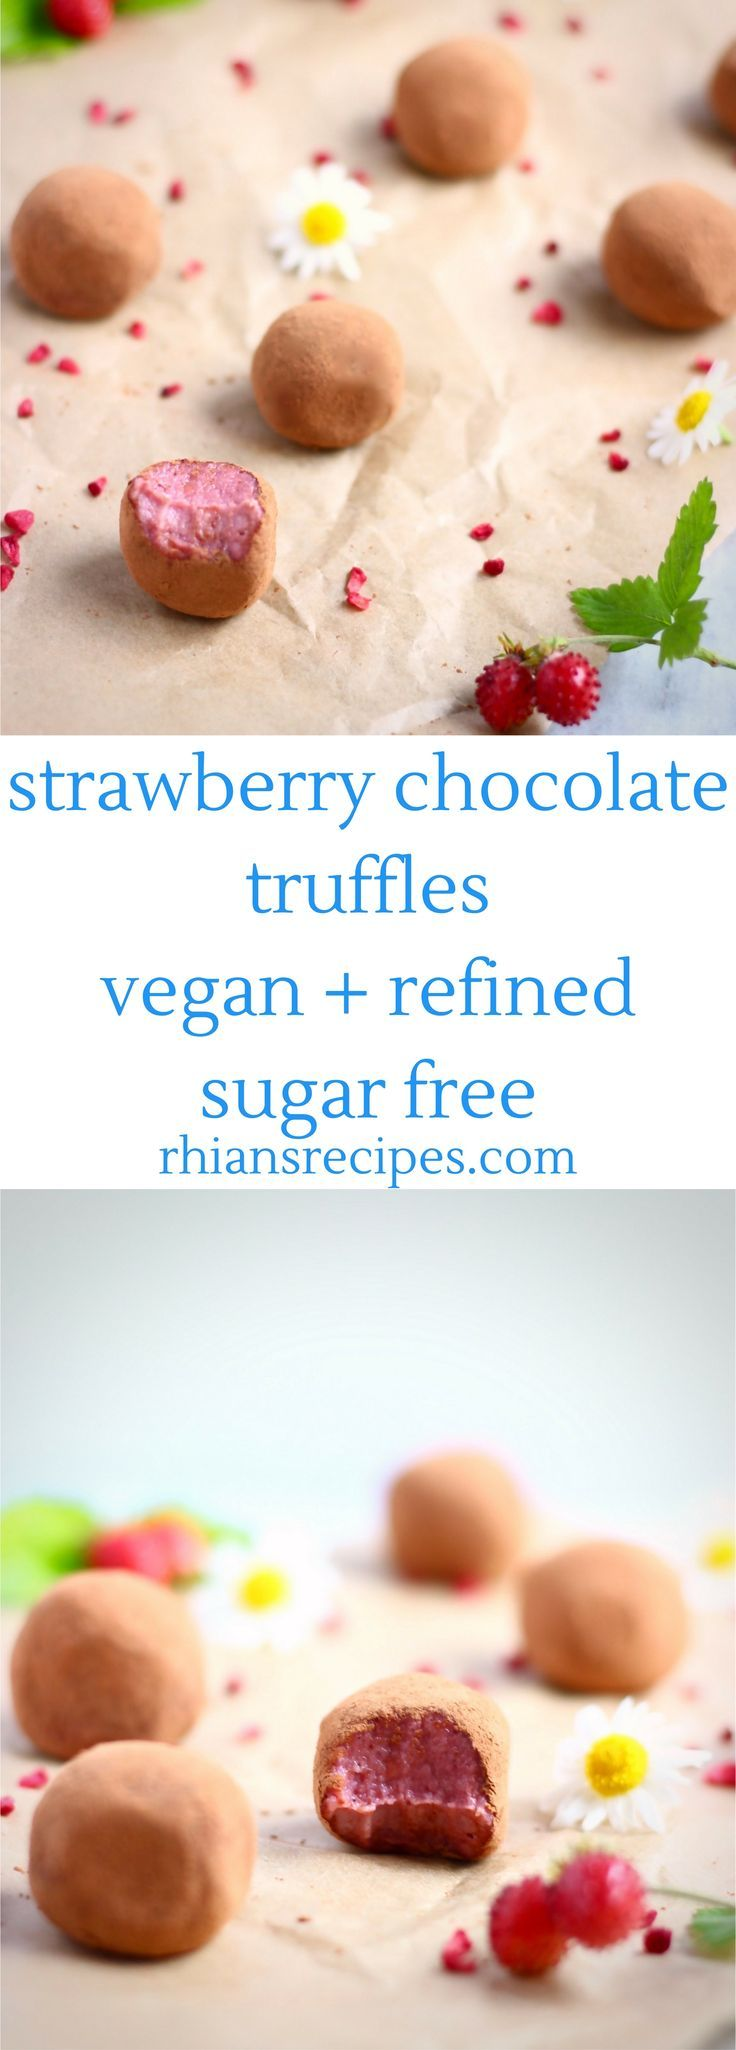 Strawberry Chocolate Truffles (Vegan, gluten-free and refined sugar free) - made with cashew nuts, strawberry jam, cacao butter, cacao powder